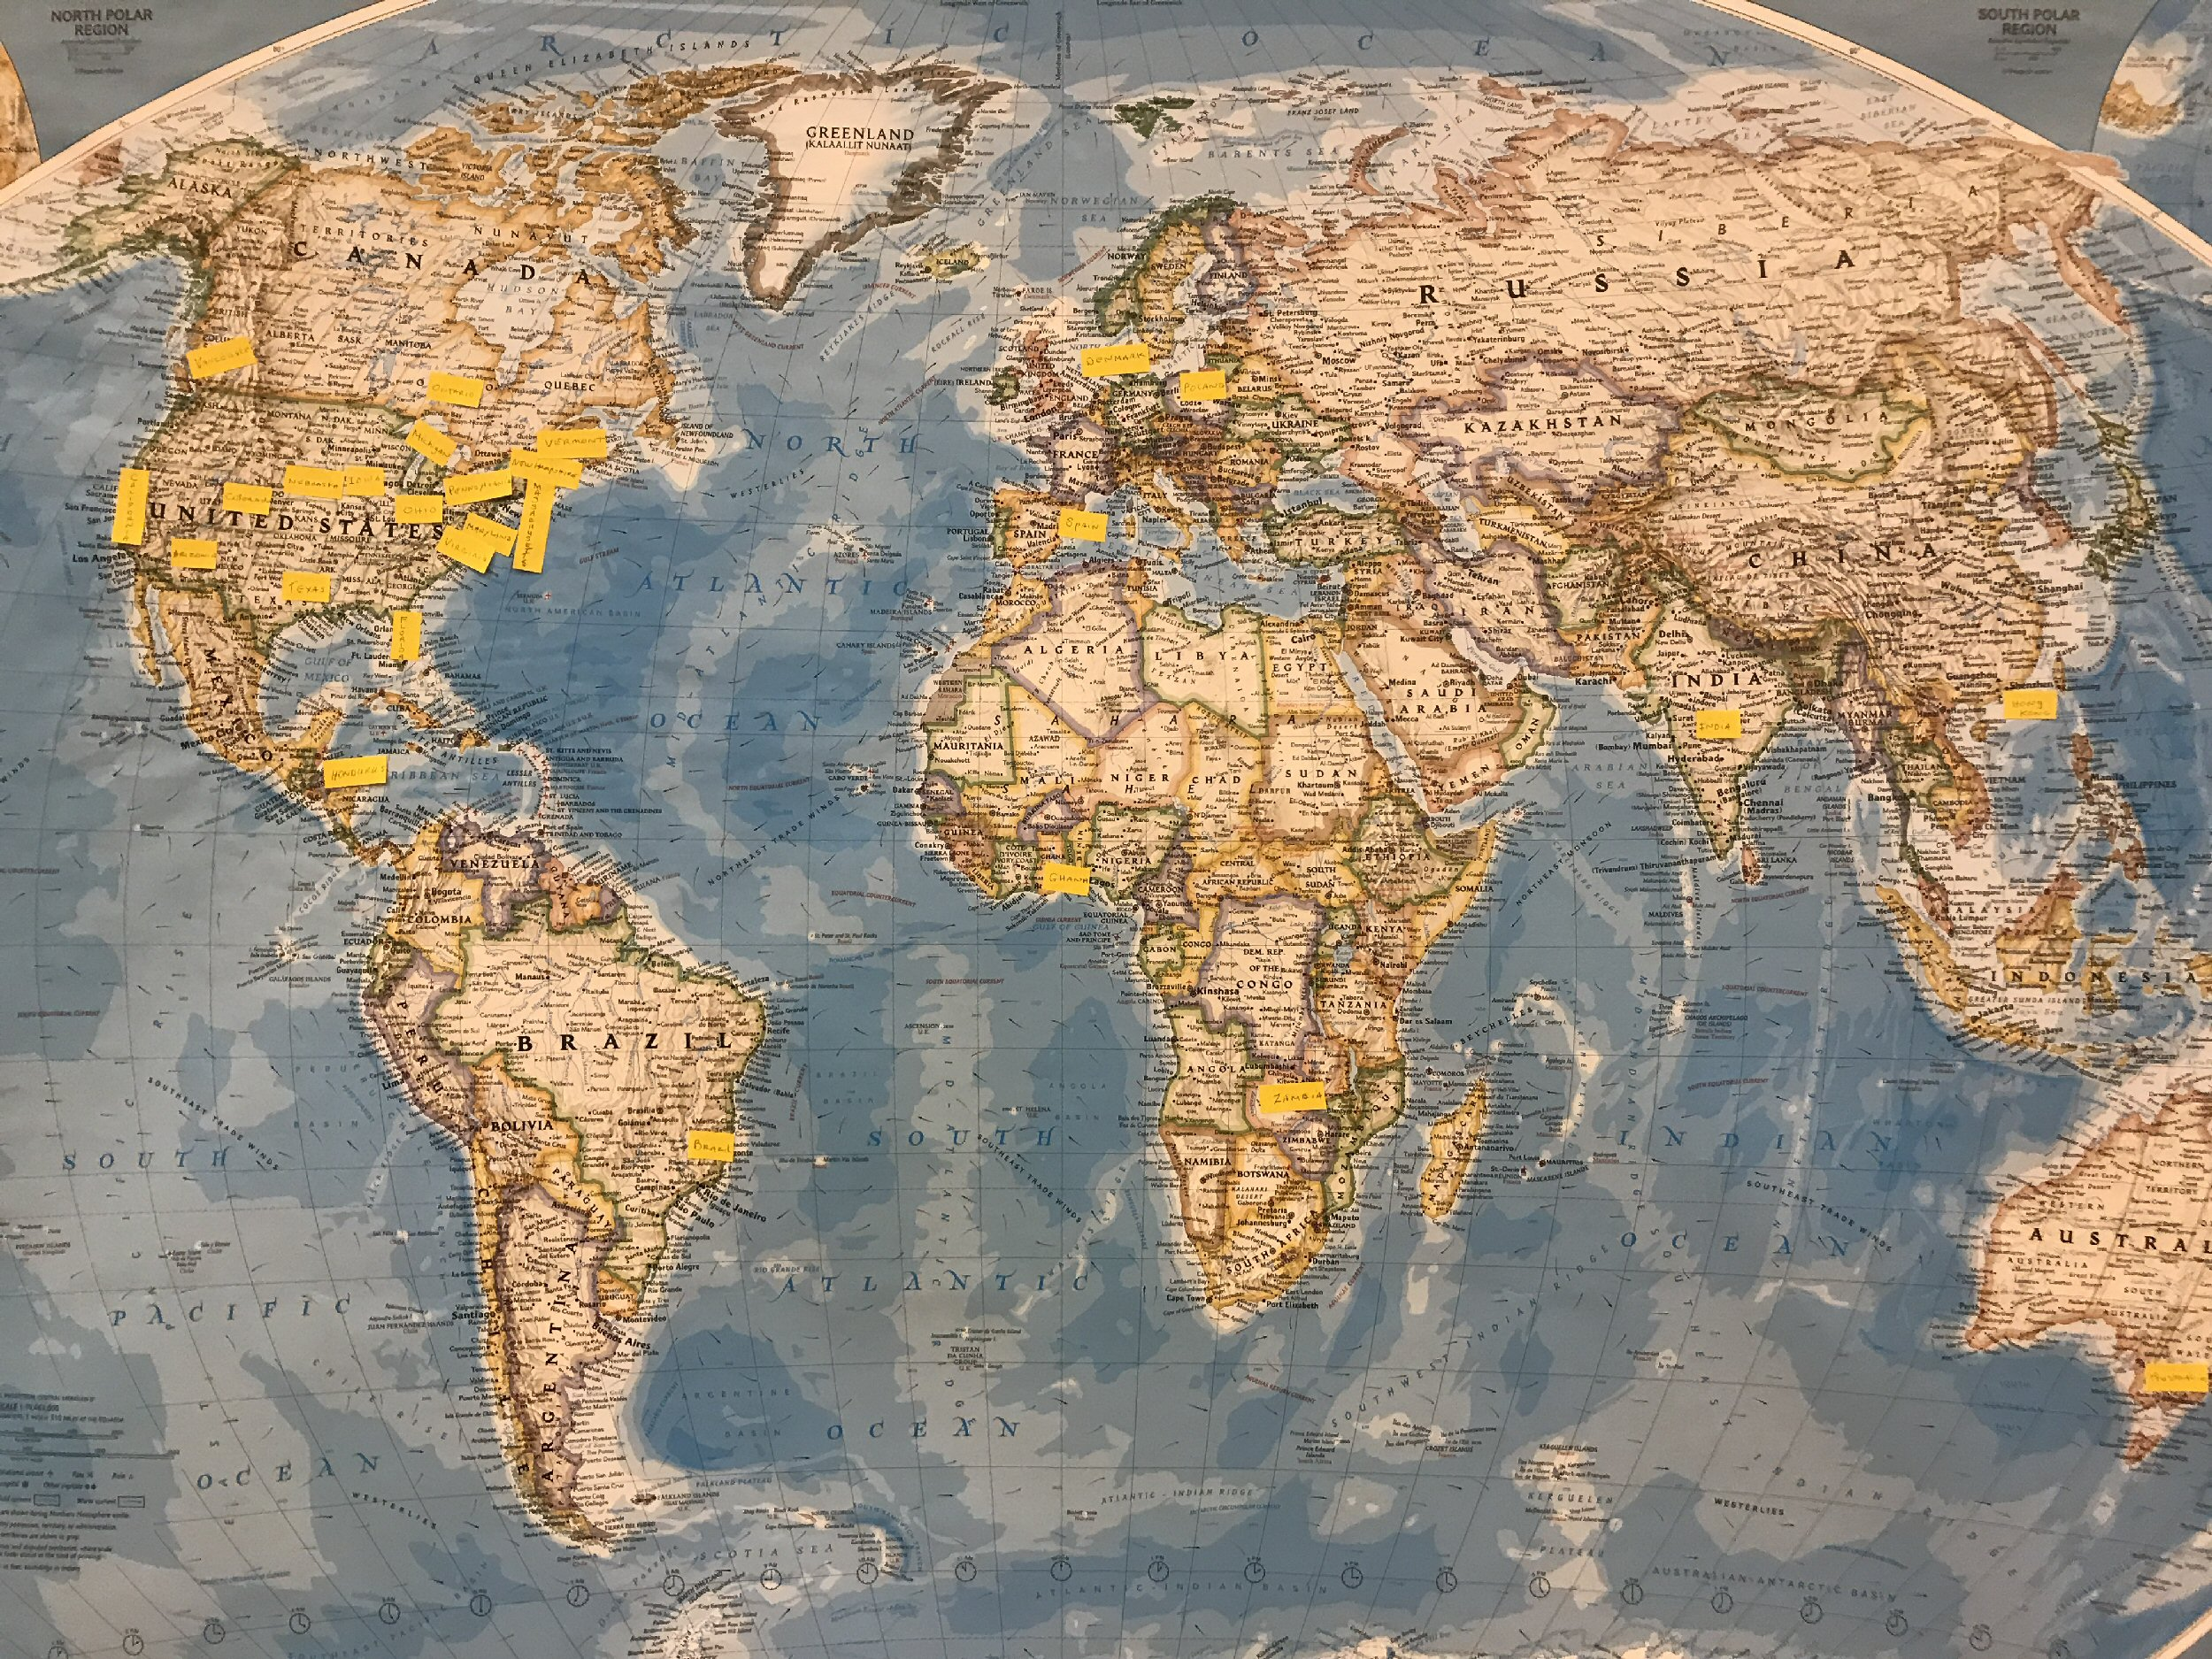 A map shows flags locating our attendees from around the world.